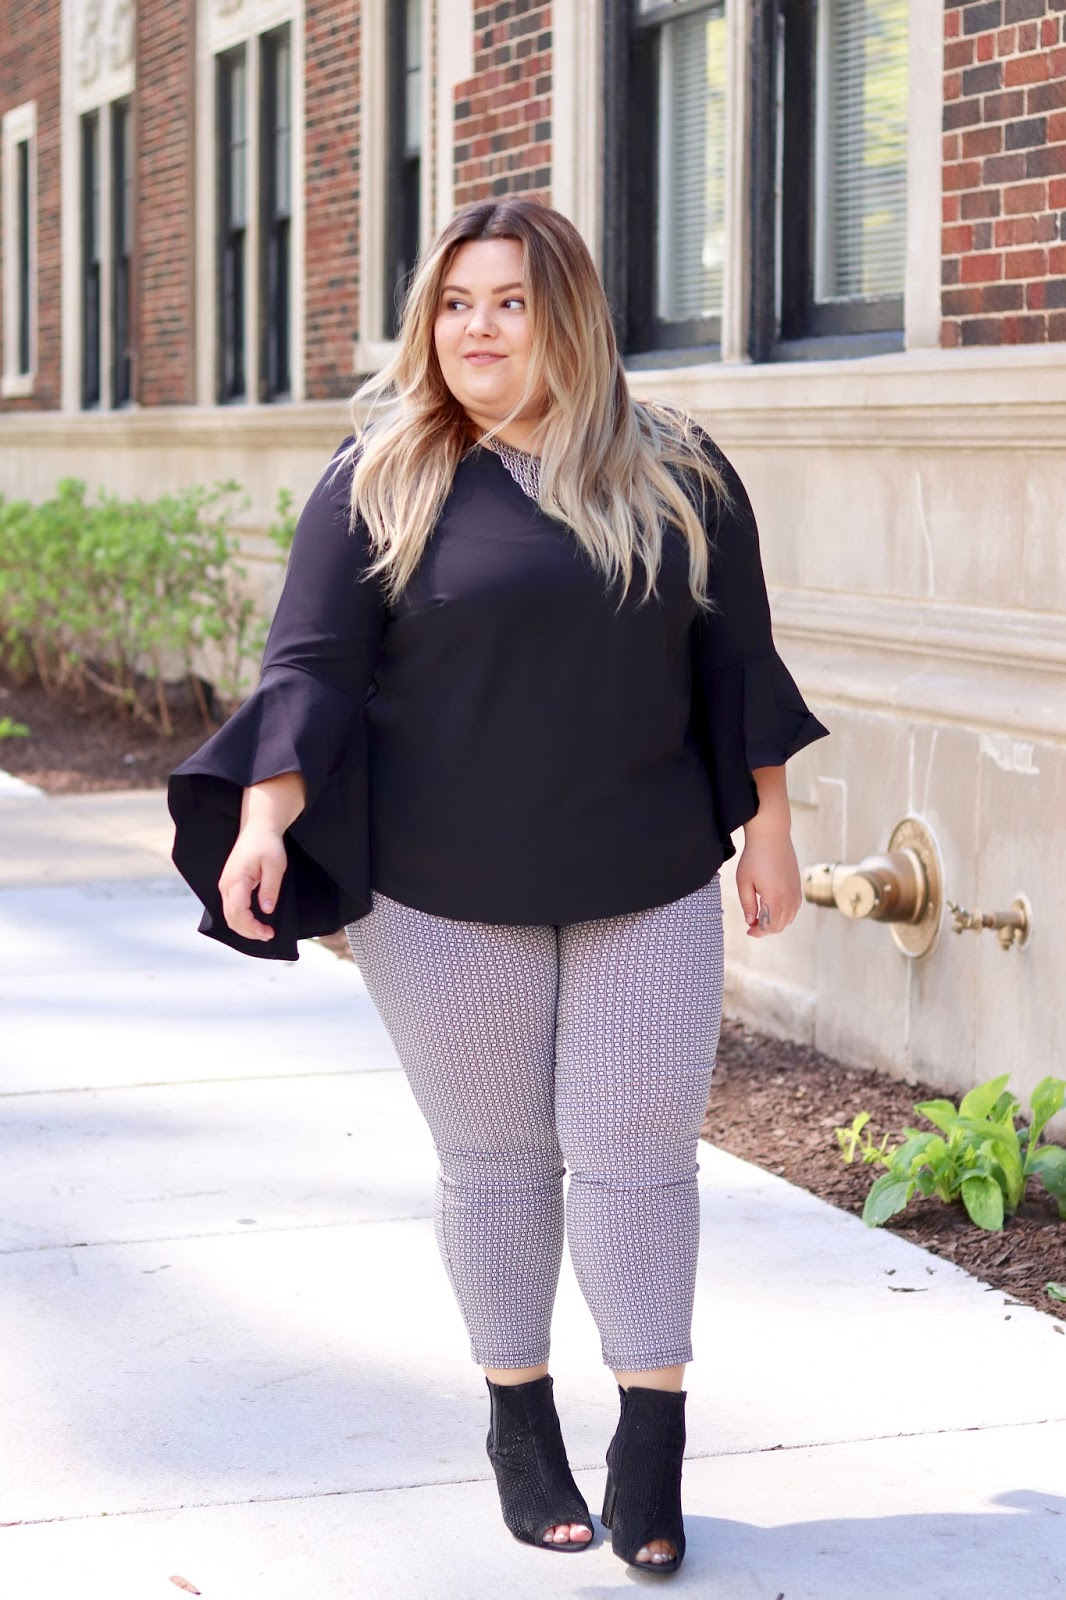 bell sleeves, plus size fashion, plus size fashion for women, plus size affordable clothes, Natalie Craig, Natalie in the city, Chicago blogger, Chicago style, Chicago fashion, eloquii, eloquii elbow flounce top, plus size office attire, plus size work attire, plus size office outfit, work wardrobe, fashion, confidence and curves